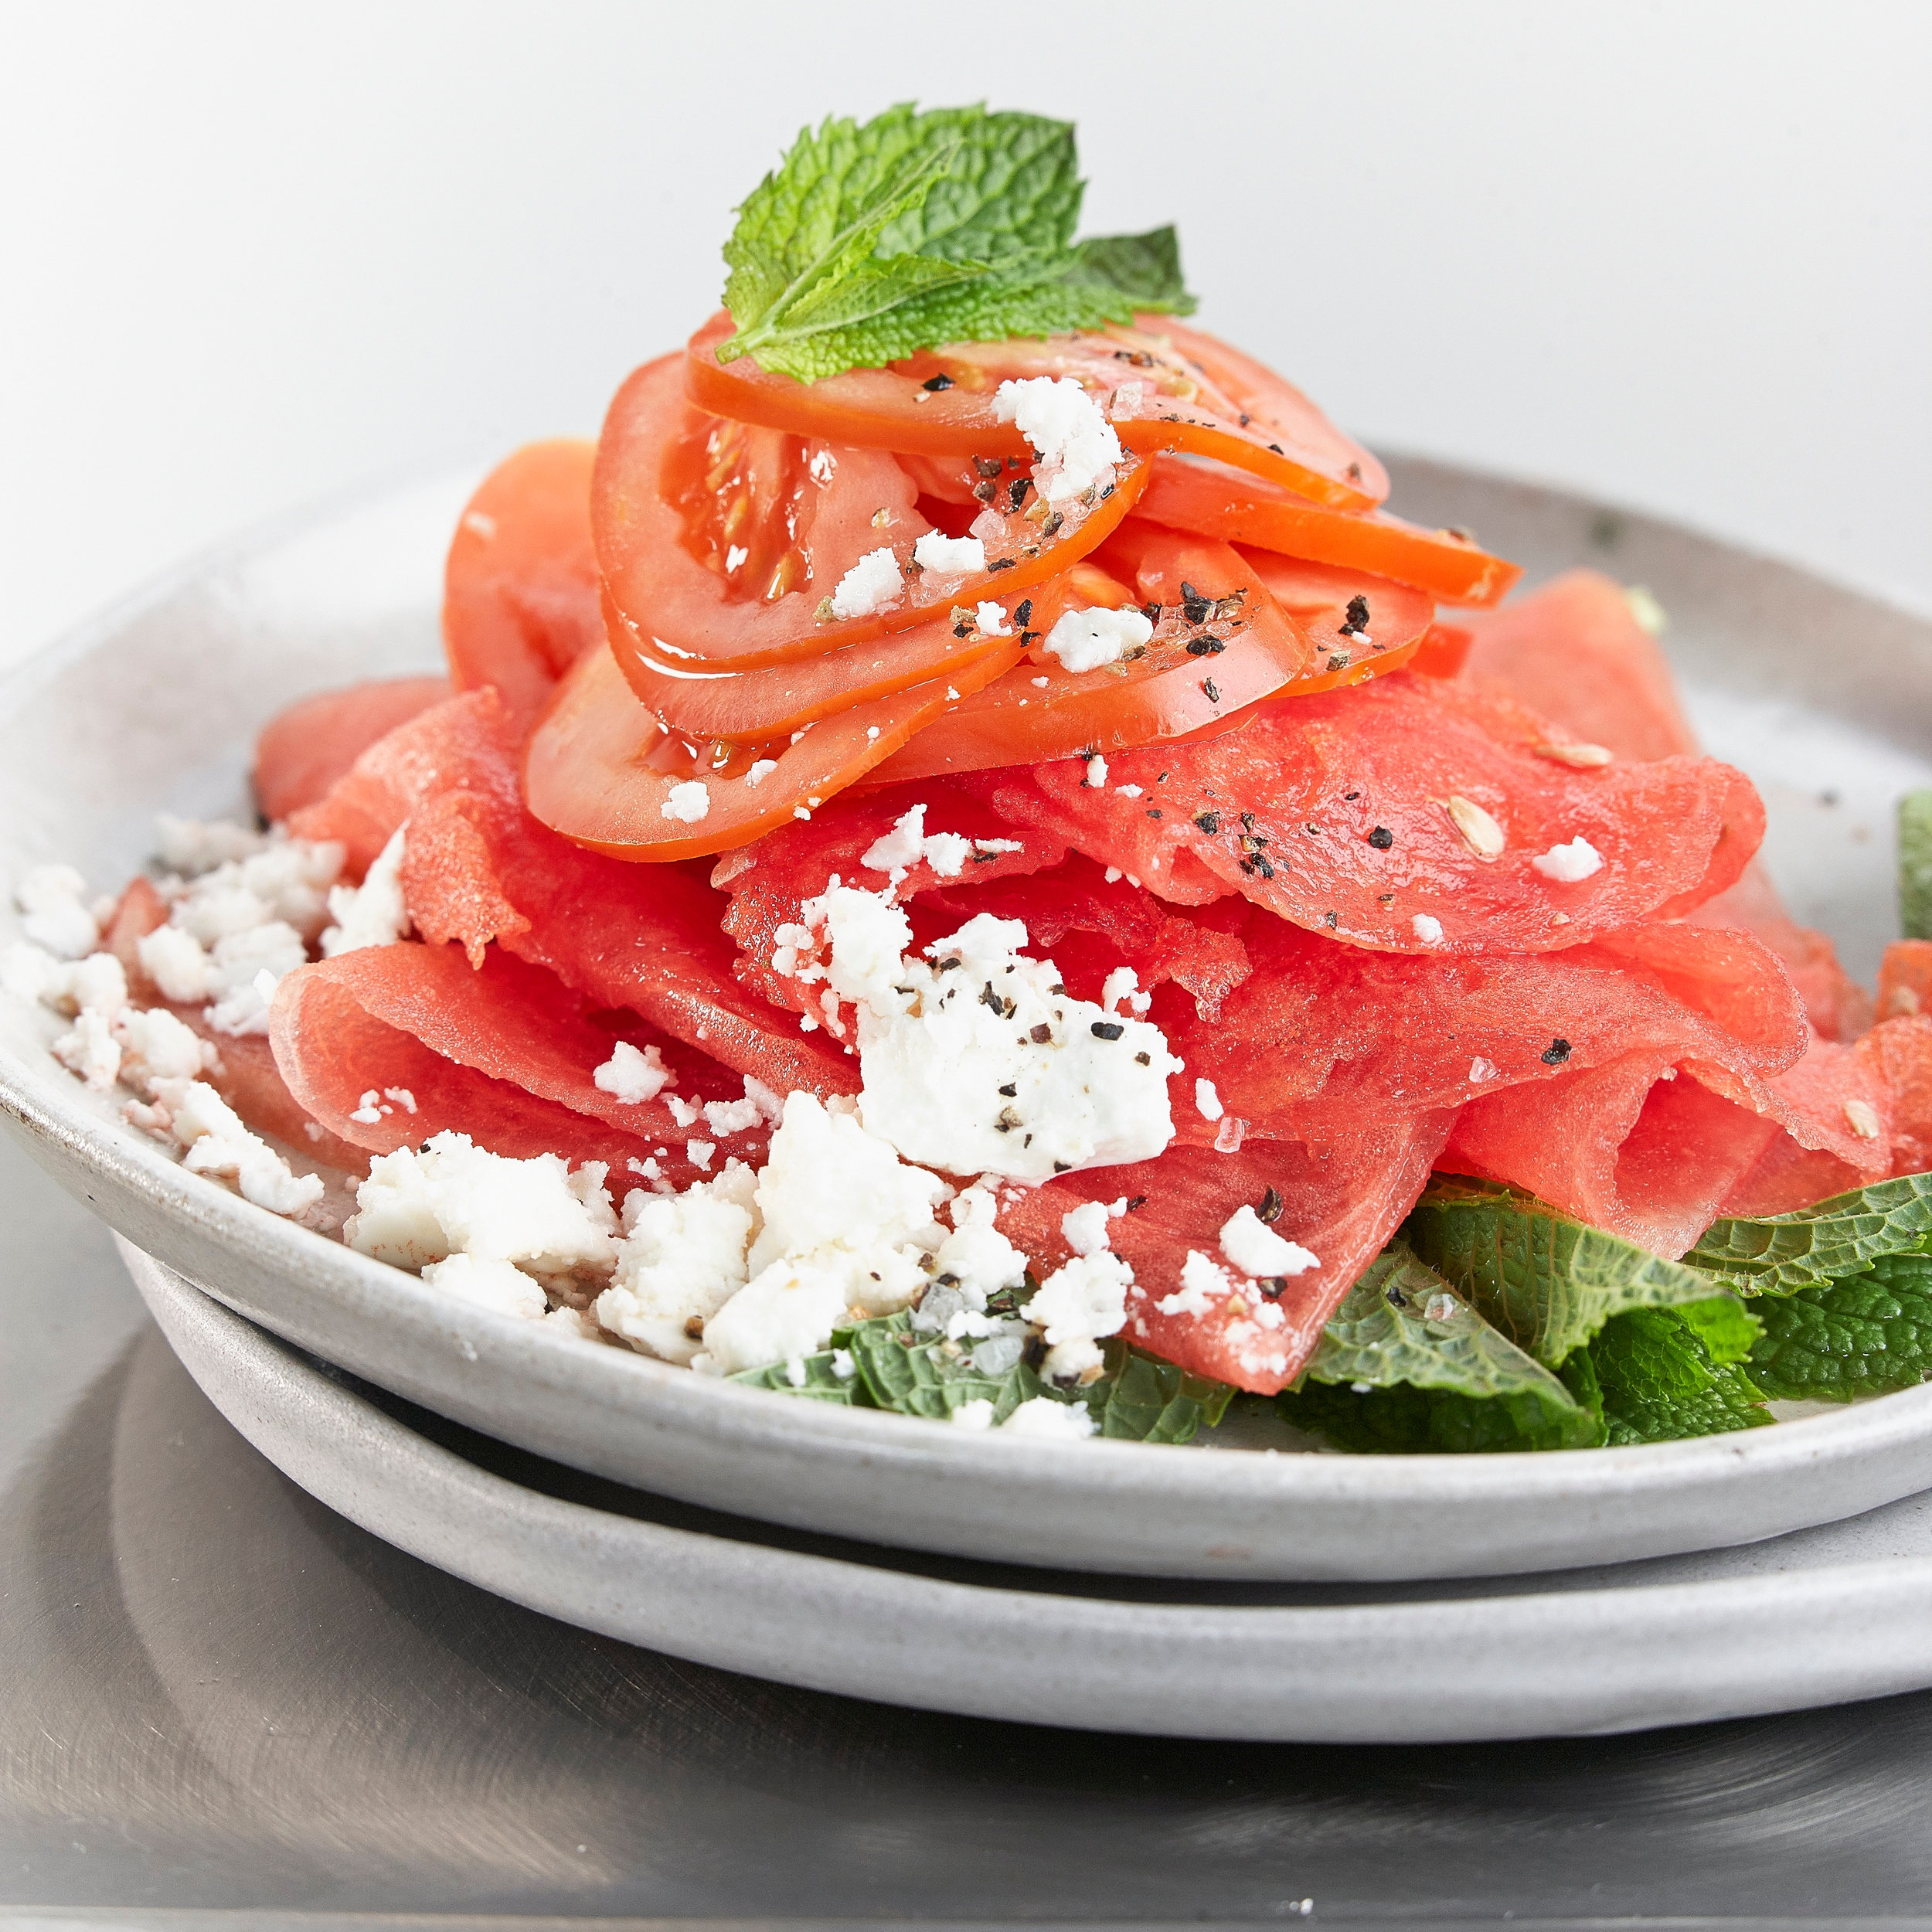 Tomato+watermelon+salad+with+feta+and+mint.jpg